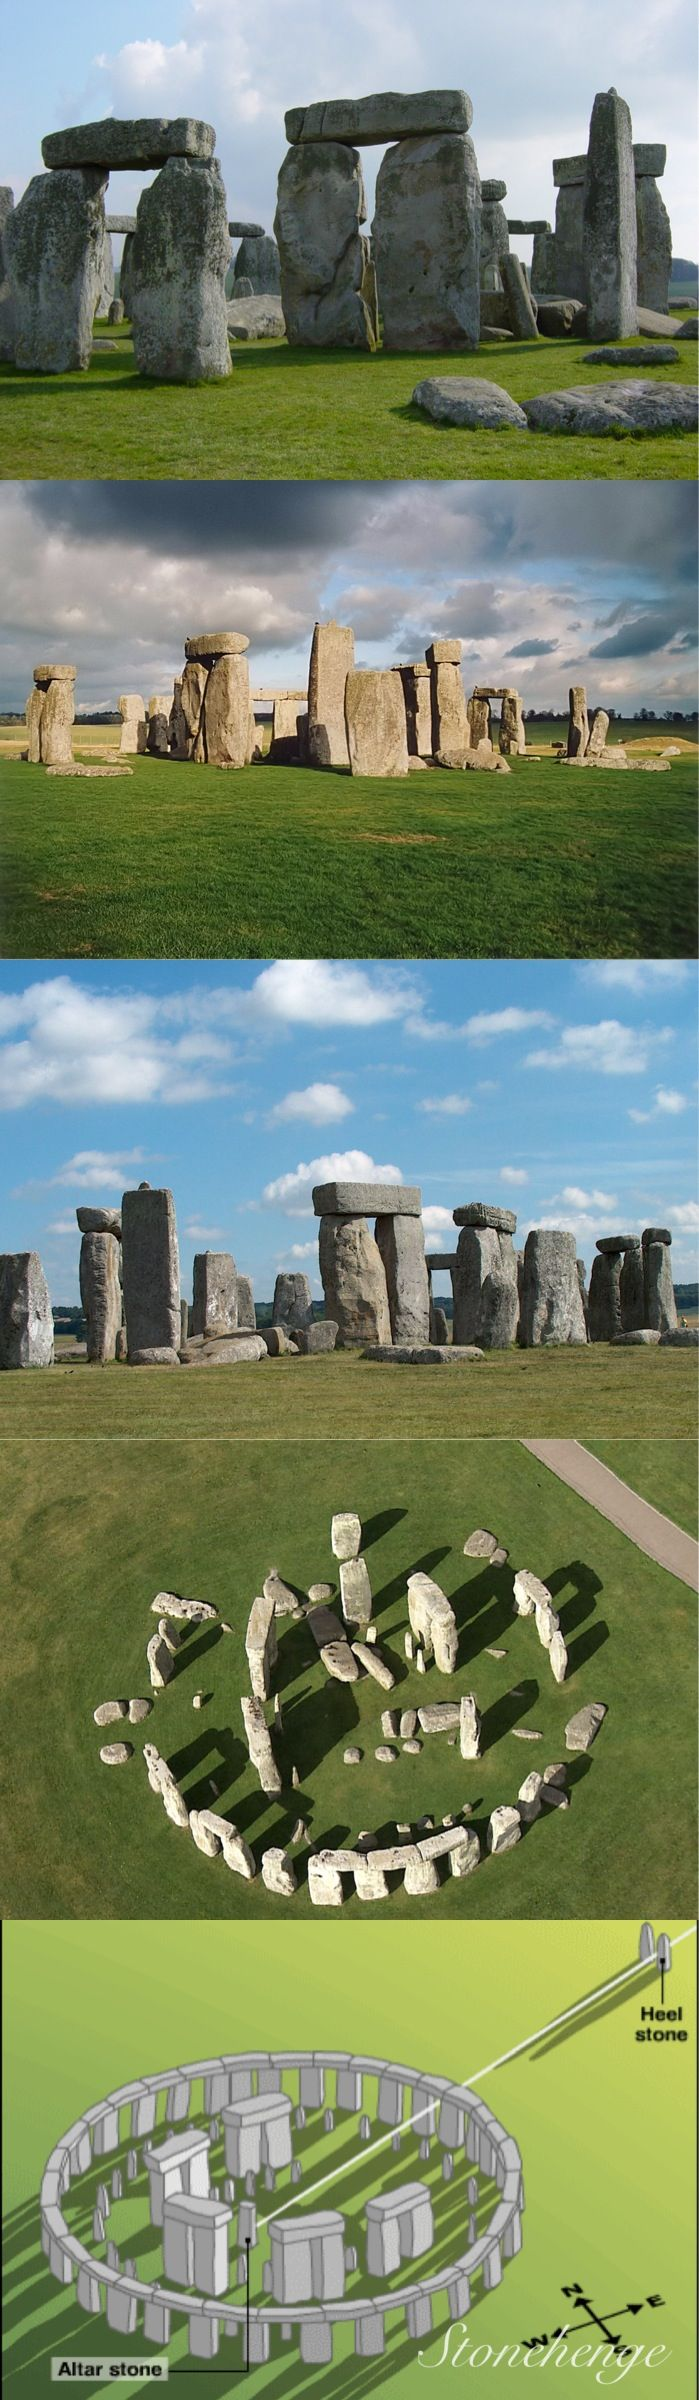 stonehenge architecture essays Read this american history essay and over 88,000 other research documents the design and making of stonehenge and of the parthenon similarities and differences the design and making of.